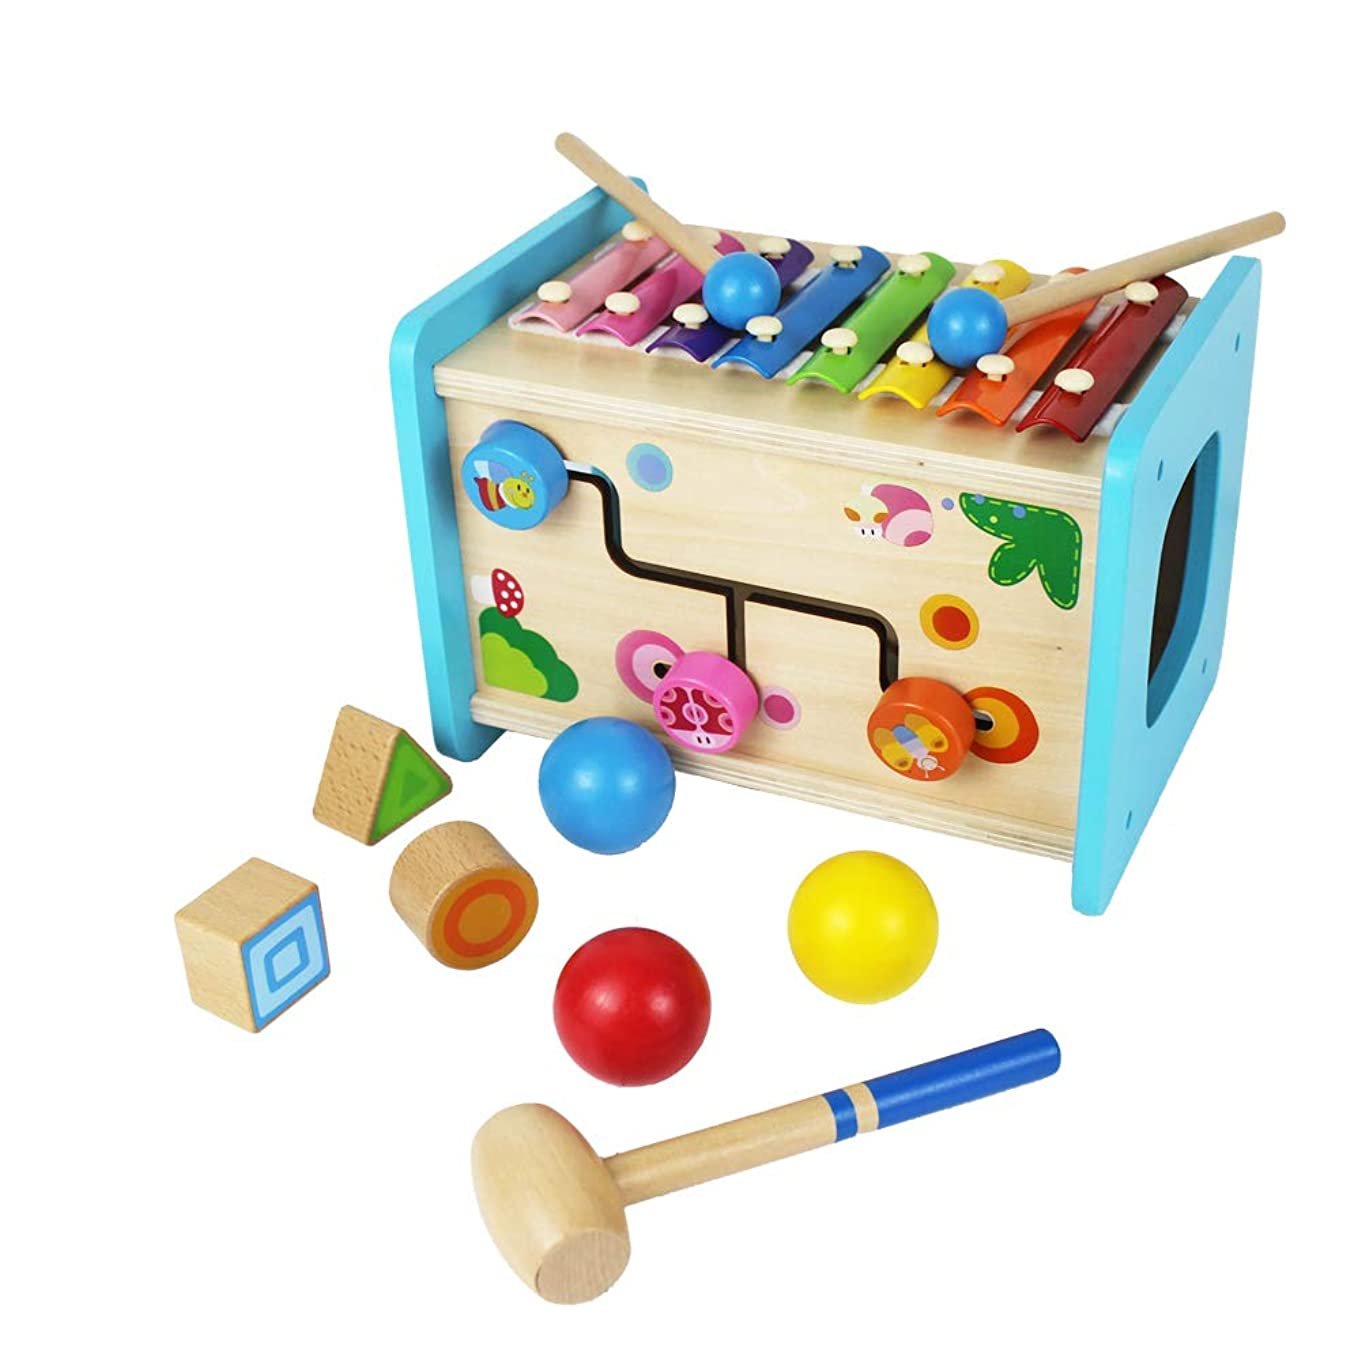 Homlory Developmental Educational Wooden Activity Cube with Xylophone Shape Sorter and Pounding Ball for 1 2 3 Year Old Girl and Boy Baby Toddler Kids Gifts Toys